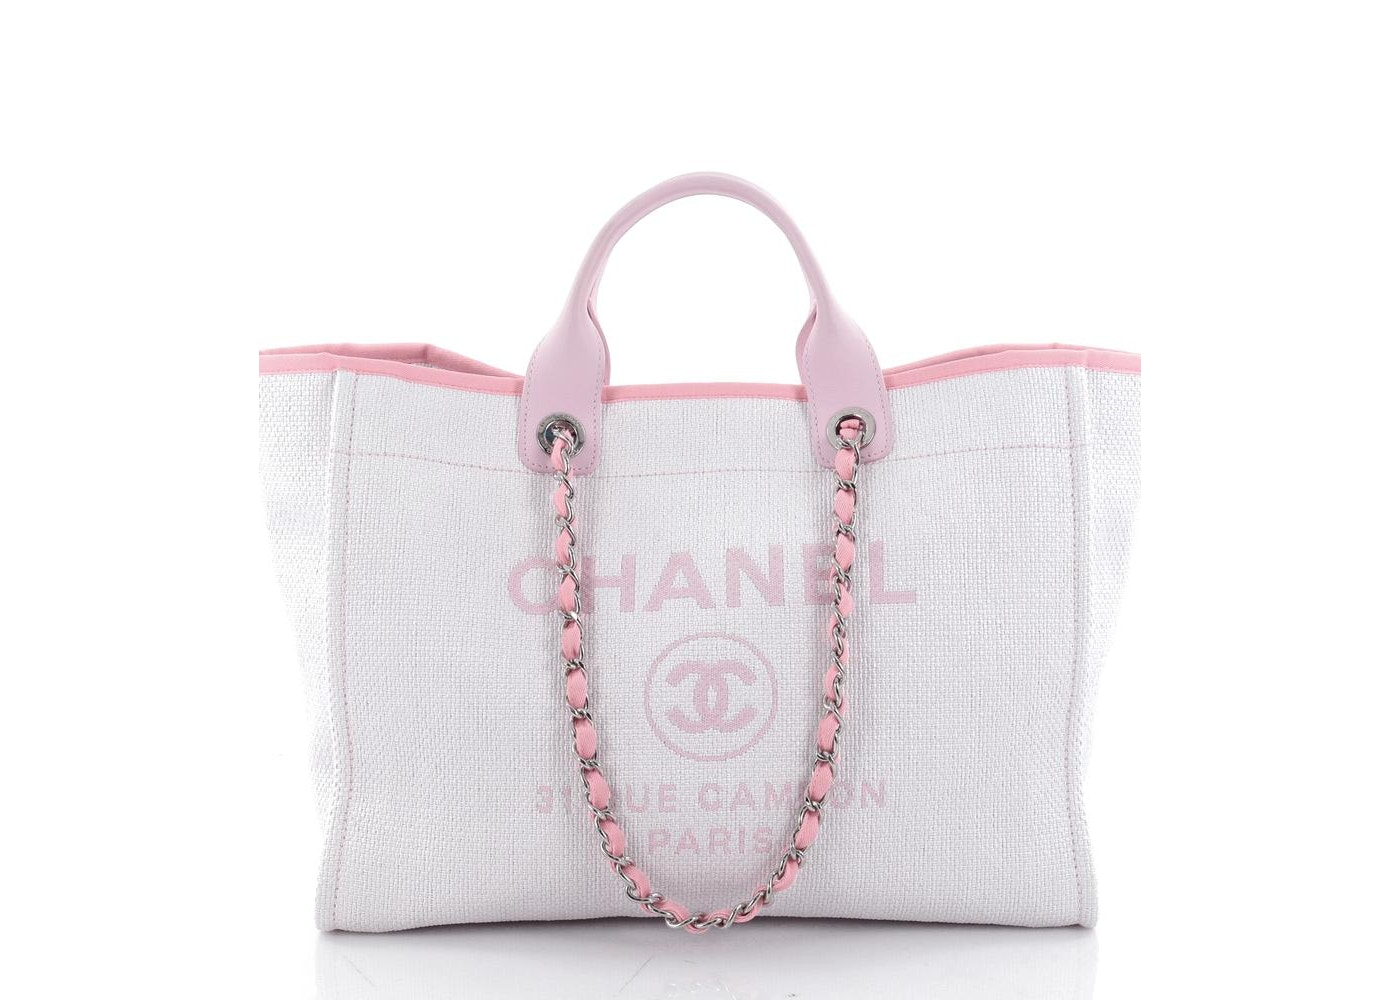 77ac833c1a7 Chanel Deauville Chain Tote Large Light Pink